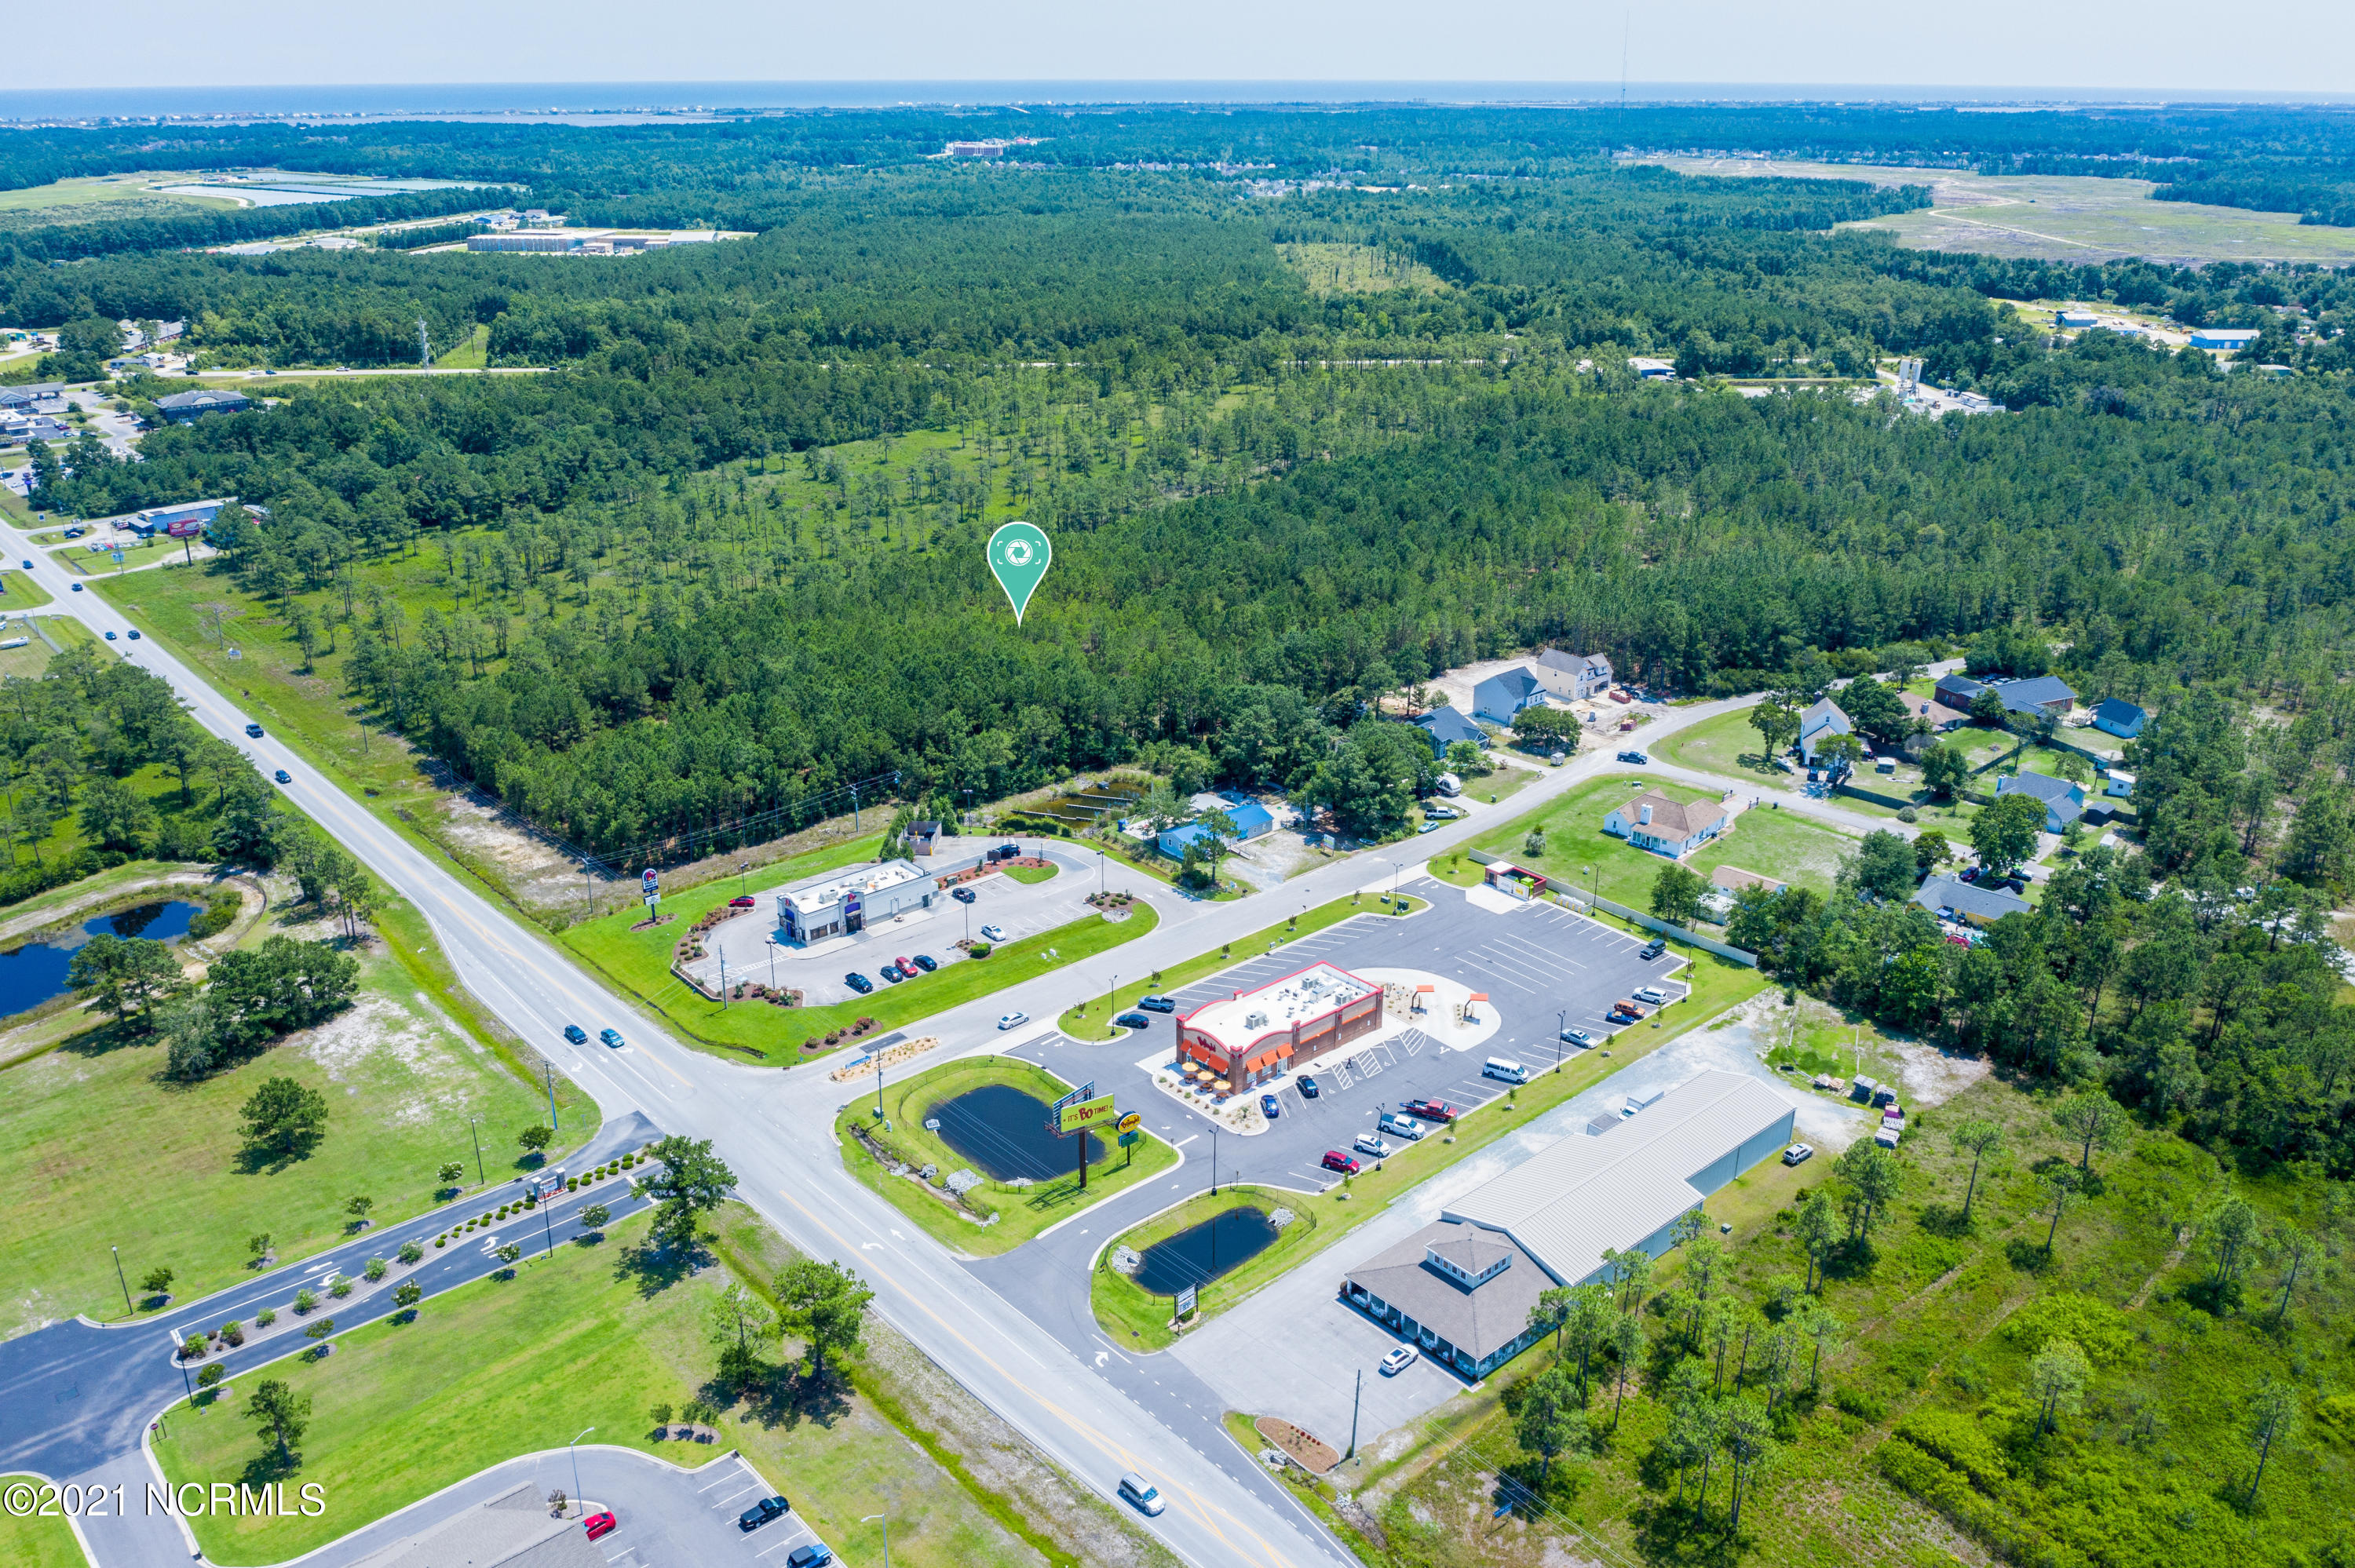 Incredible opportunity to own12 acres of commercial land in fast growing in Sneads Ferry.  The lot is located just north of the coastal community of Wilmington and south of the military community of Jacksonville. The subject  boasts 300' of frontage along NC Highway 210 (+/- 27,000 AADT).  The property is zoned HB (Highway Business District) in Onslow County which permits a variety of retail and commercial uses.  Close to residential and retail - don't miss this chance to be part of this expanding coastal village.